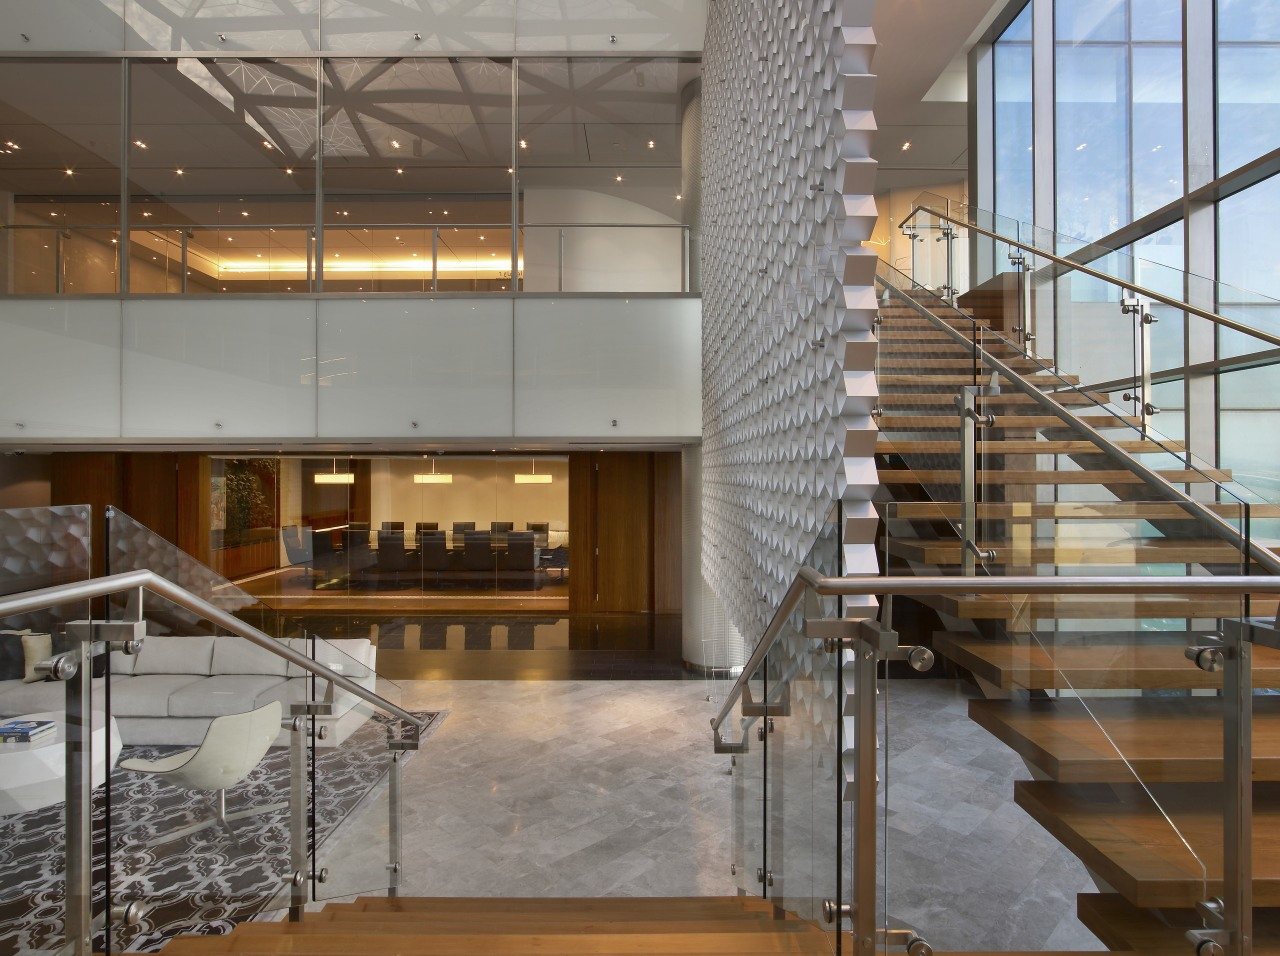 Wooden stairs with grey cutout feature wall. architecture, ceiling, glass, handrail, interior design, lobby, stairs, gray, brown